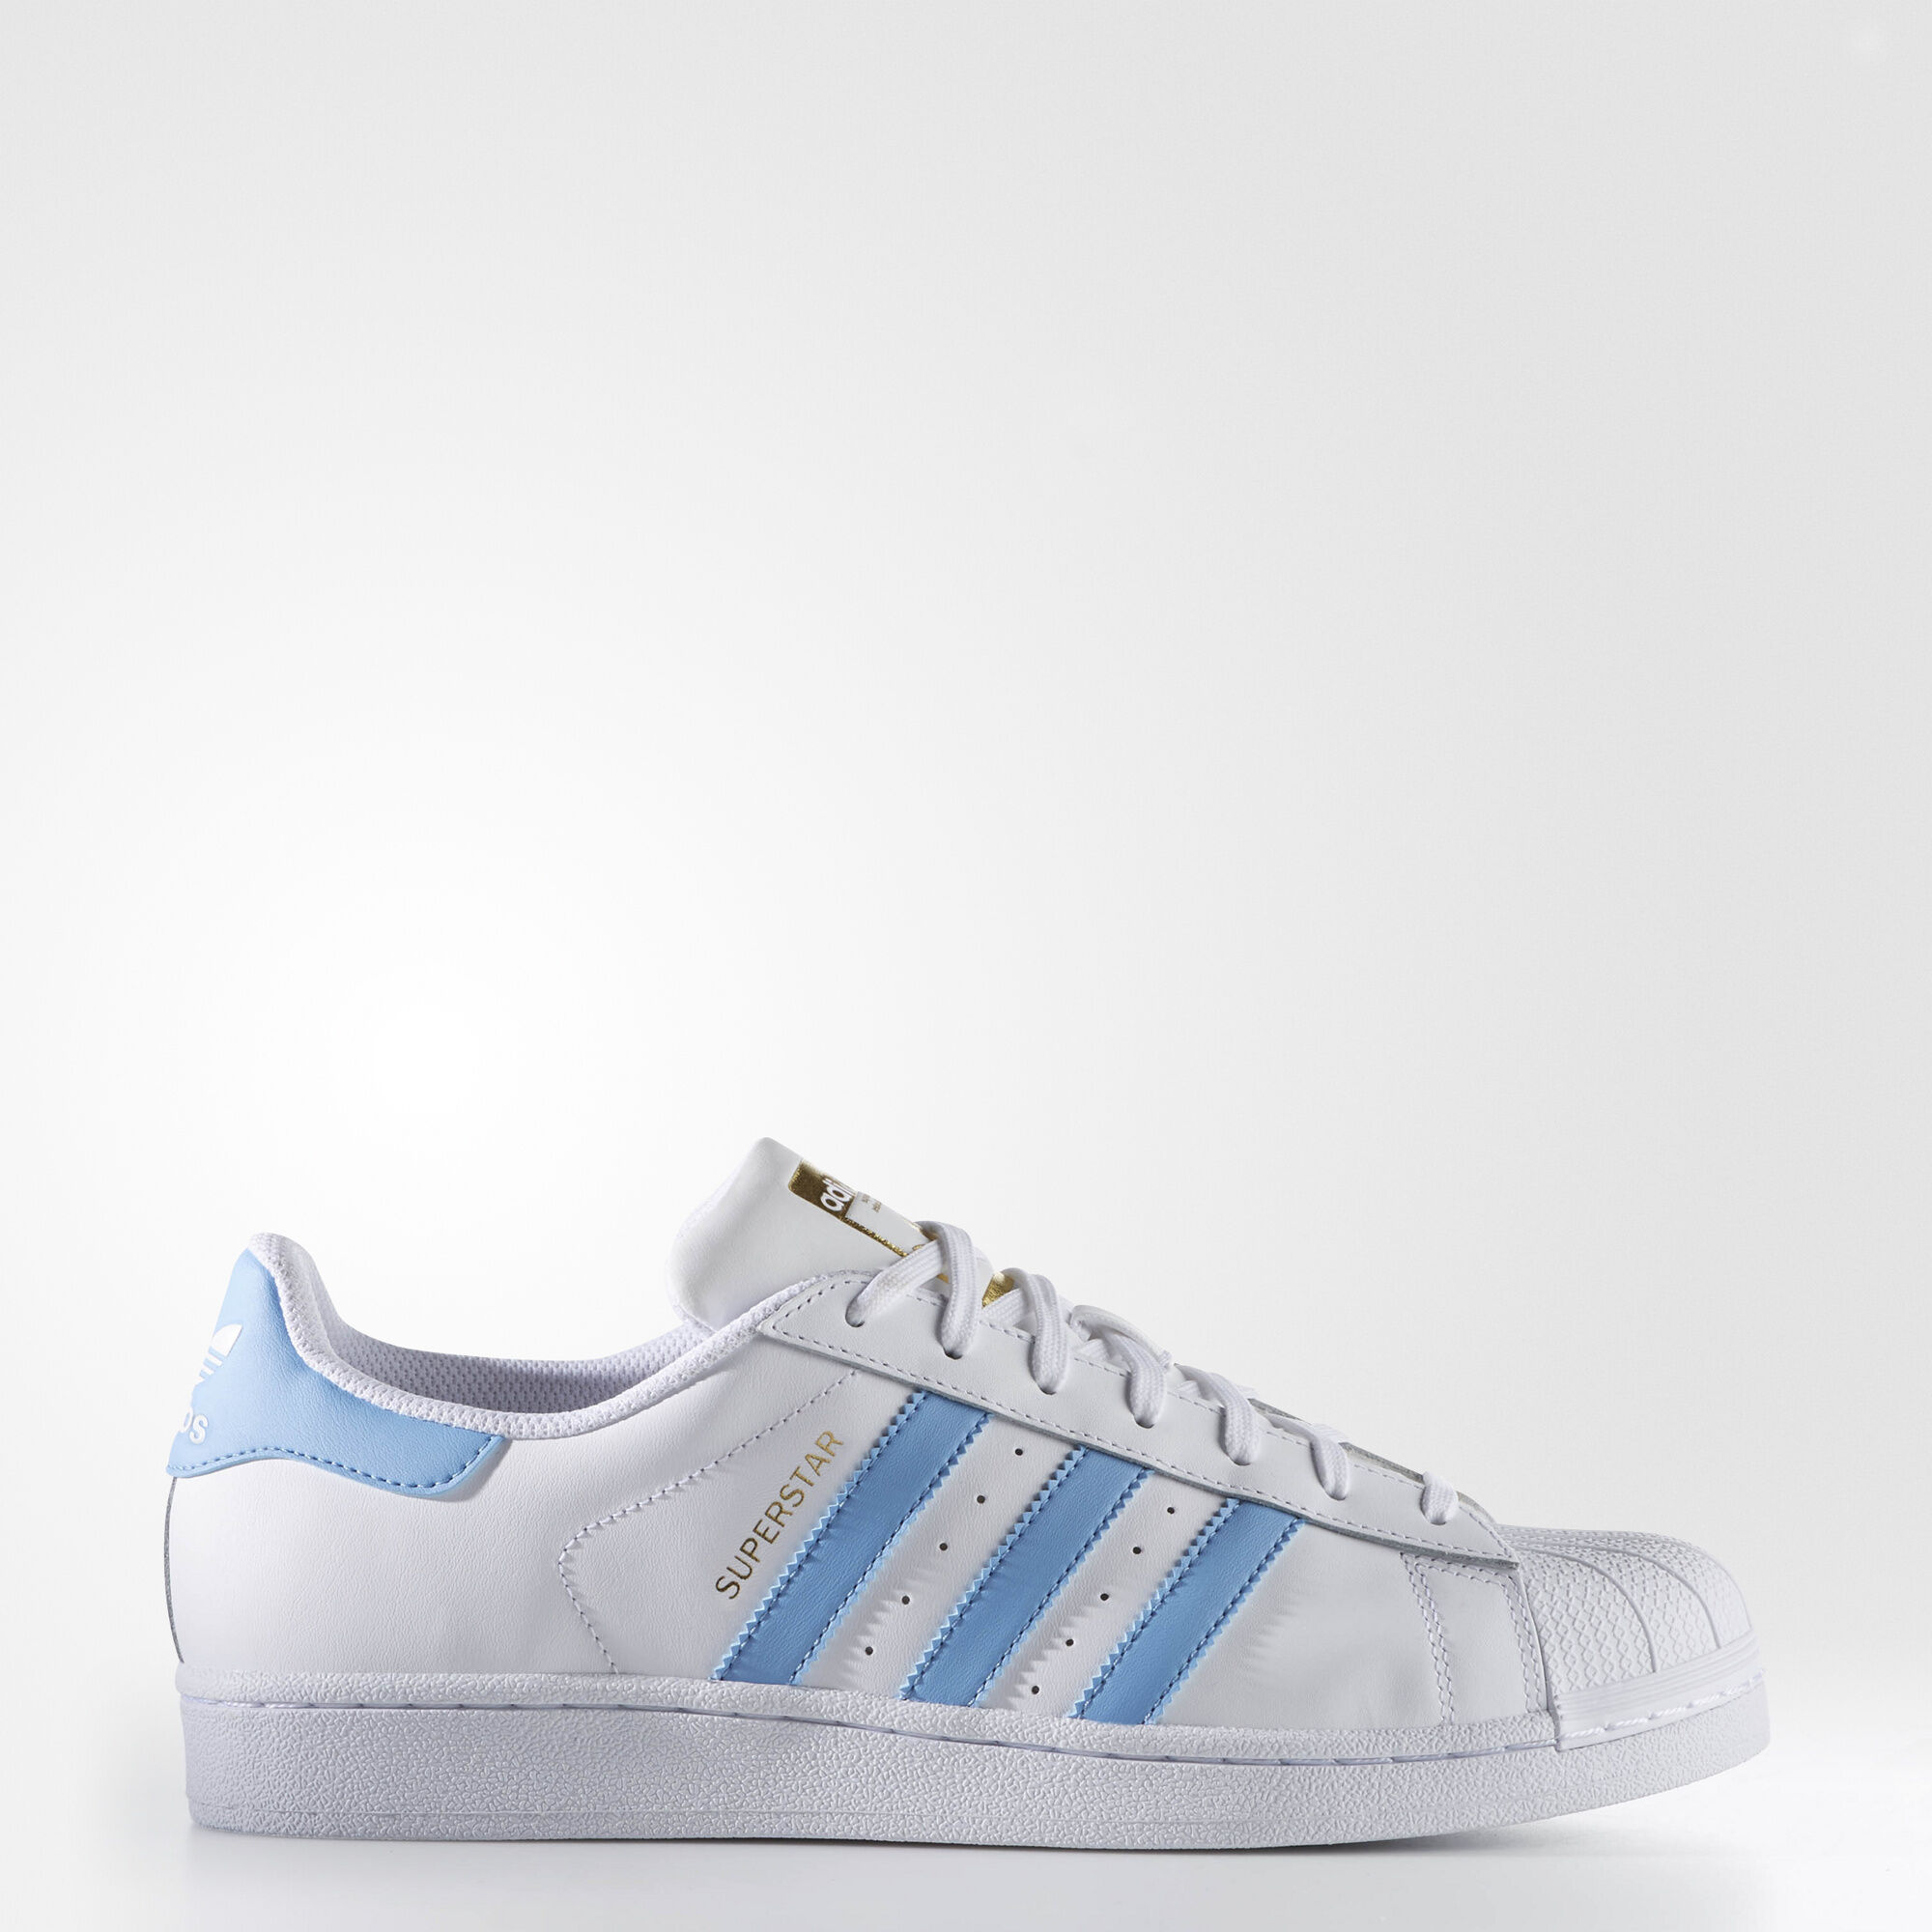 Adidas Shoes Photos